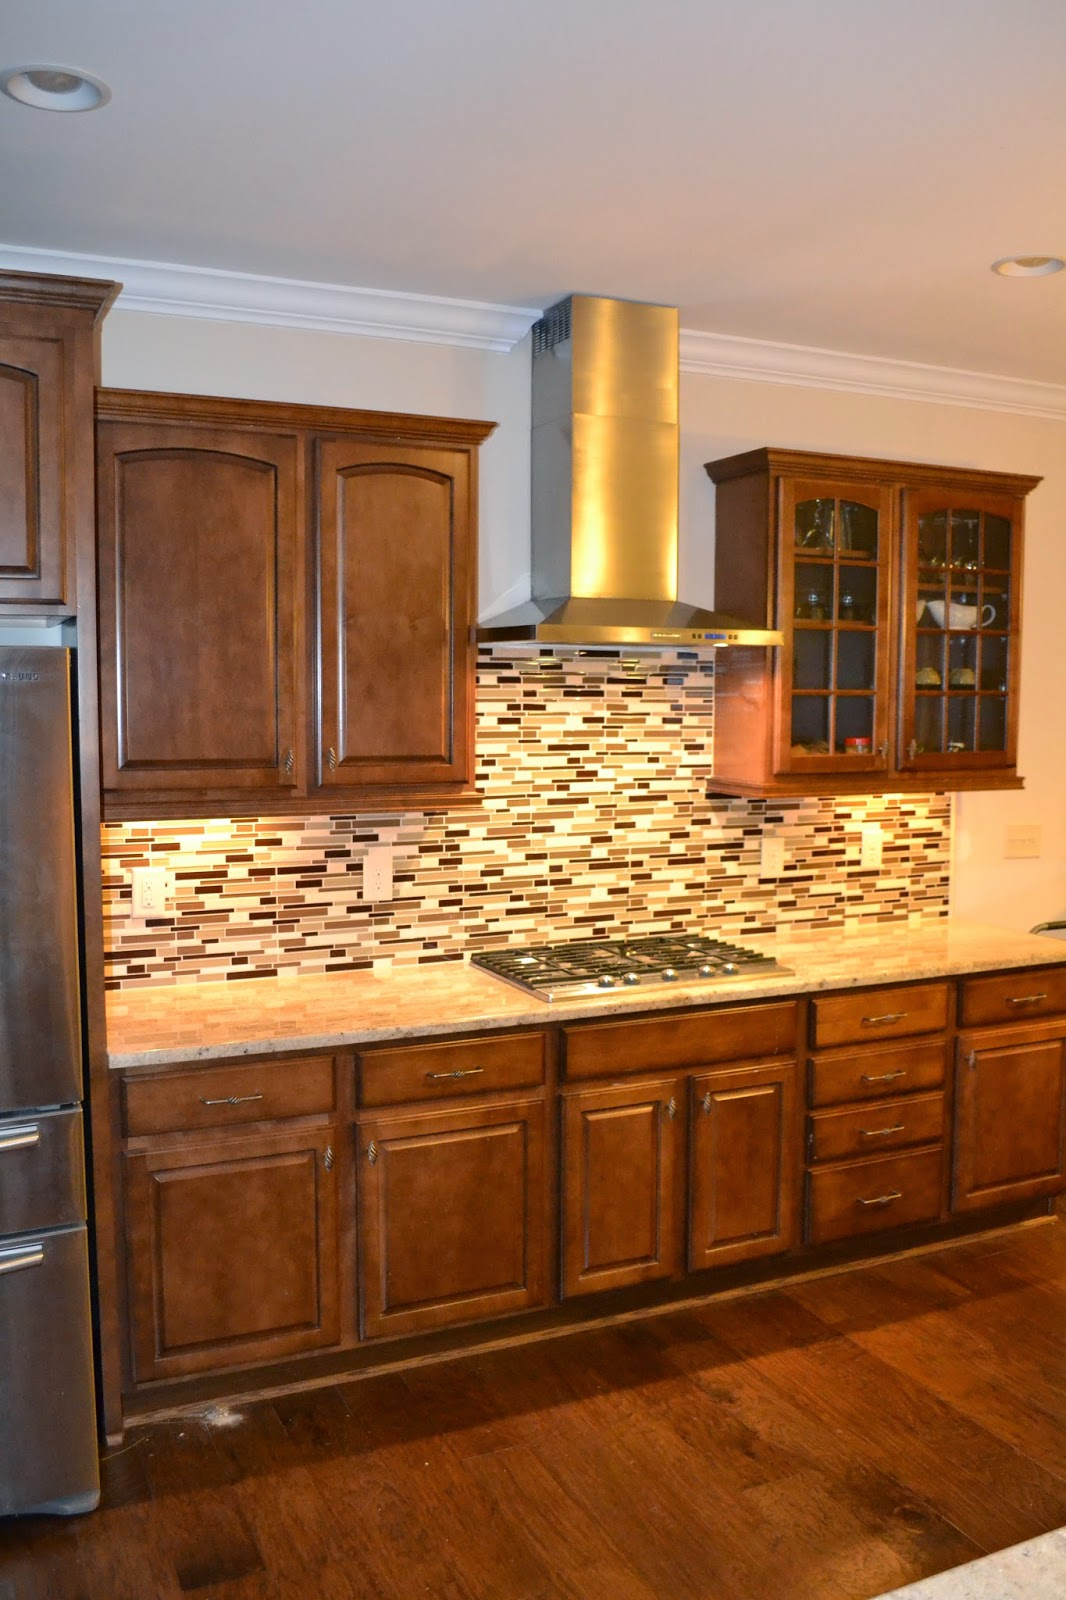 glass-and-stone-linear-tile-backsplash